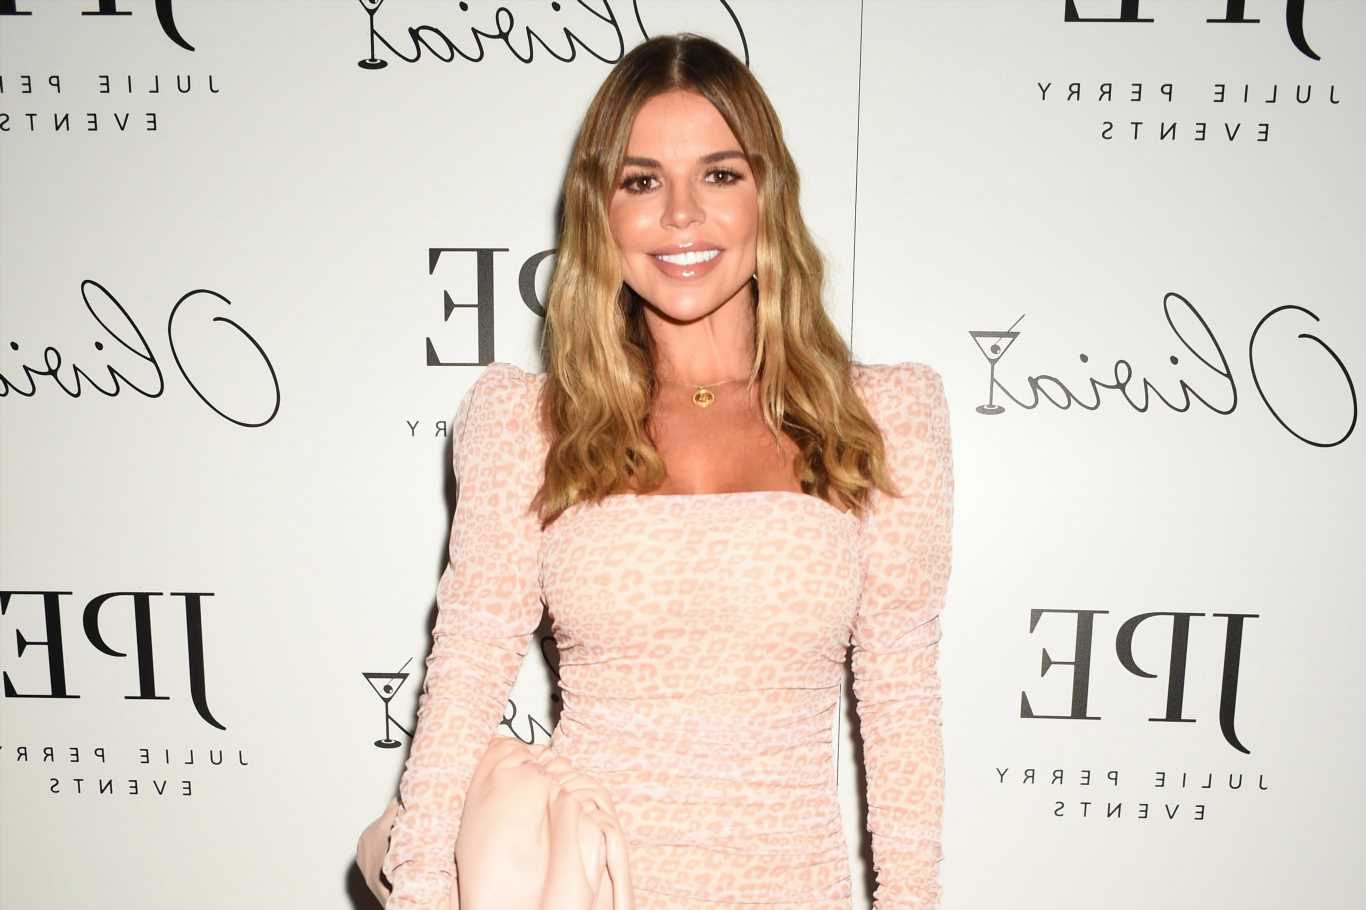 Real Housewives of Cheshire's Tanya Bardsley taken to hospital after suffering a seizure and collapsing